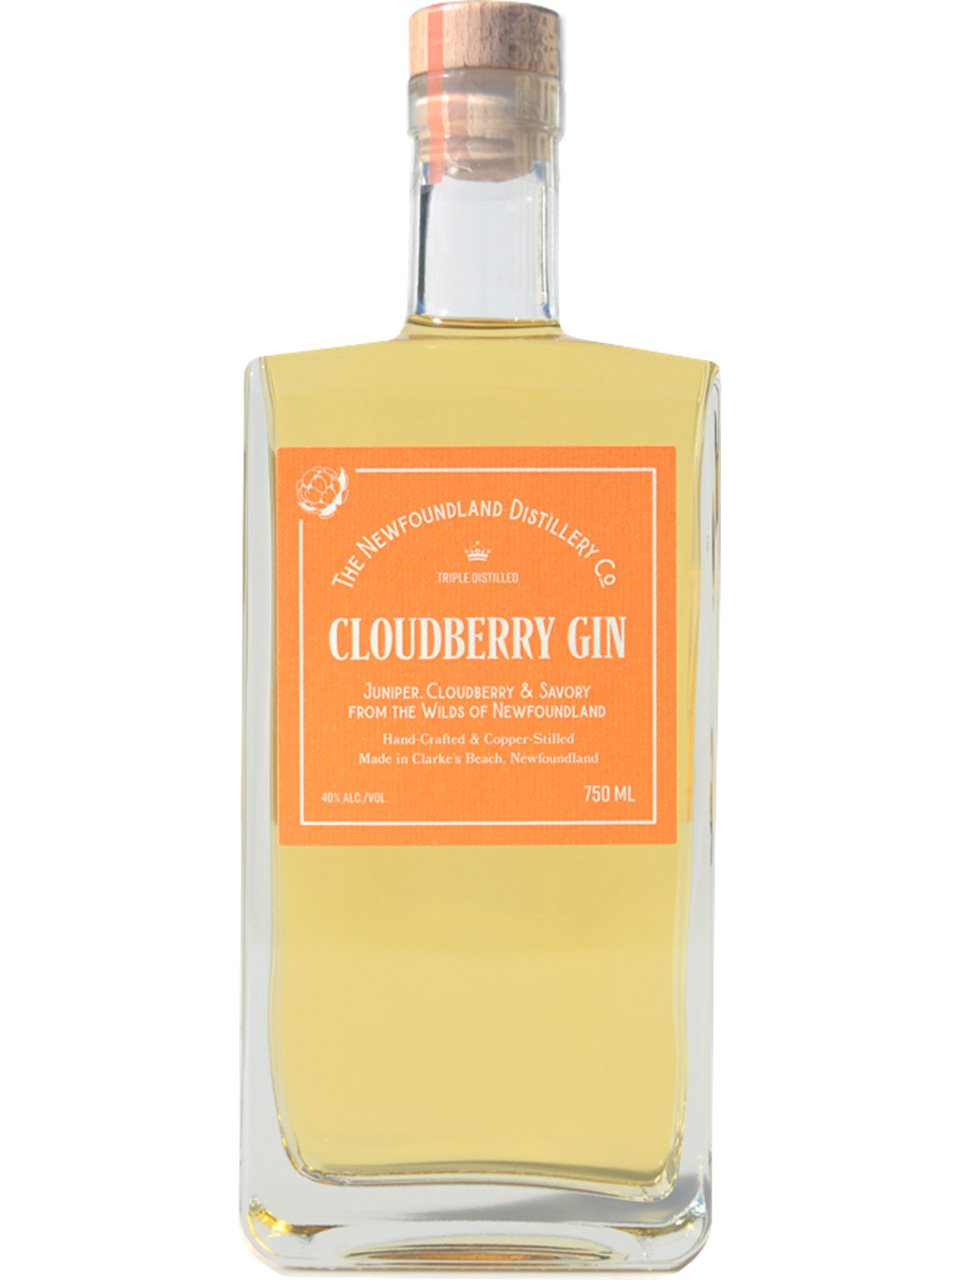 The Newfoundland Distillery Co. Cloudberry Gin